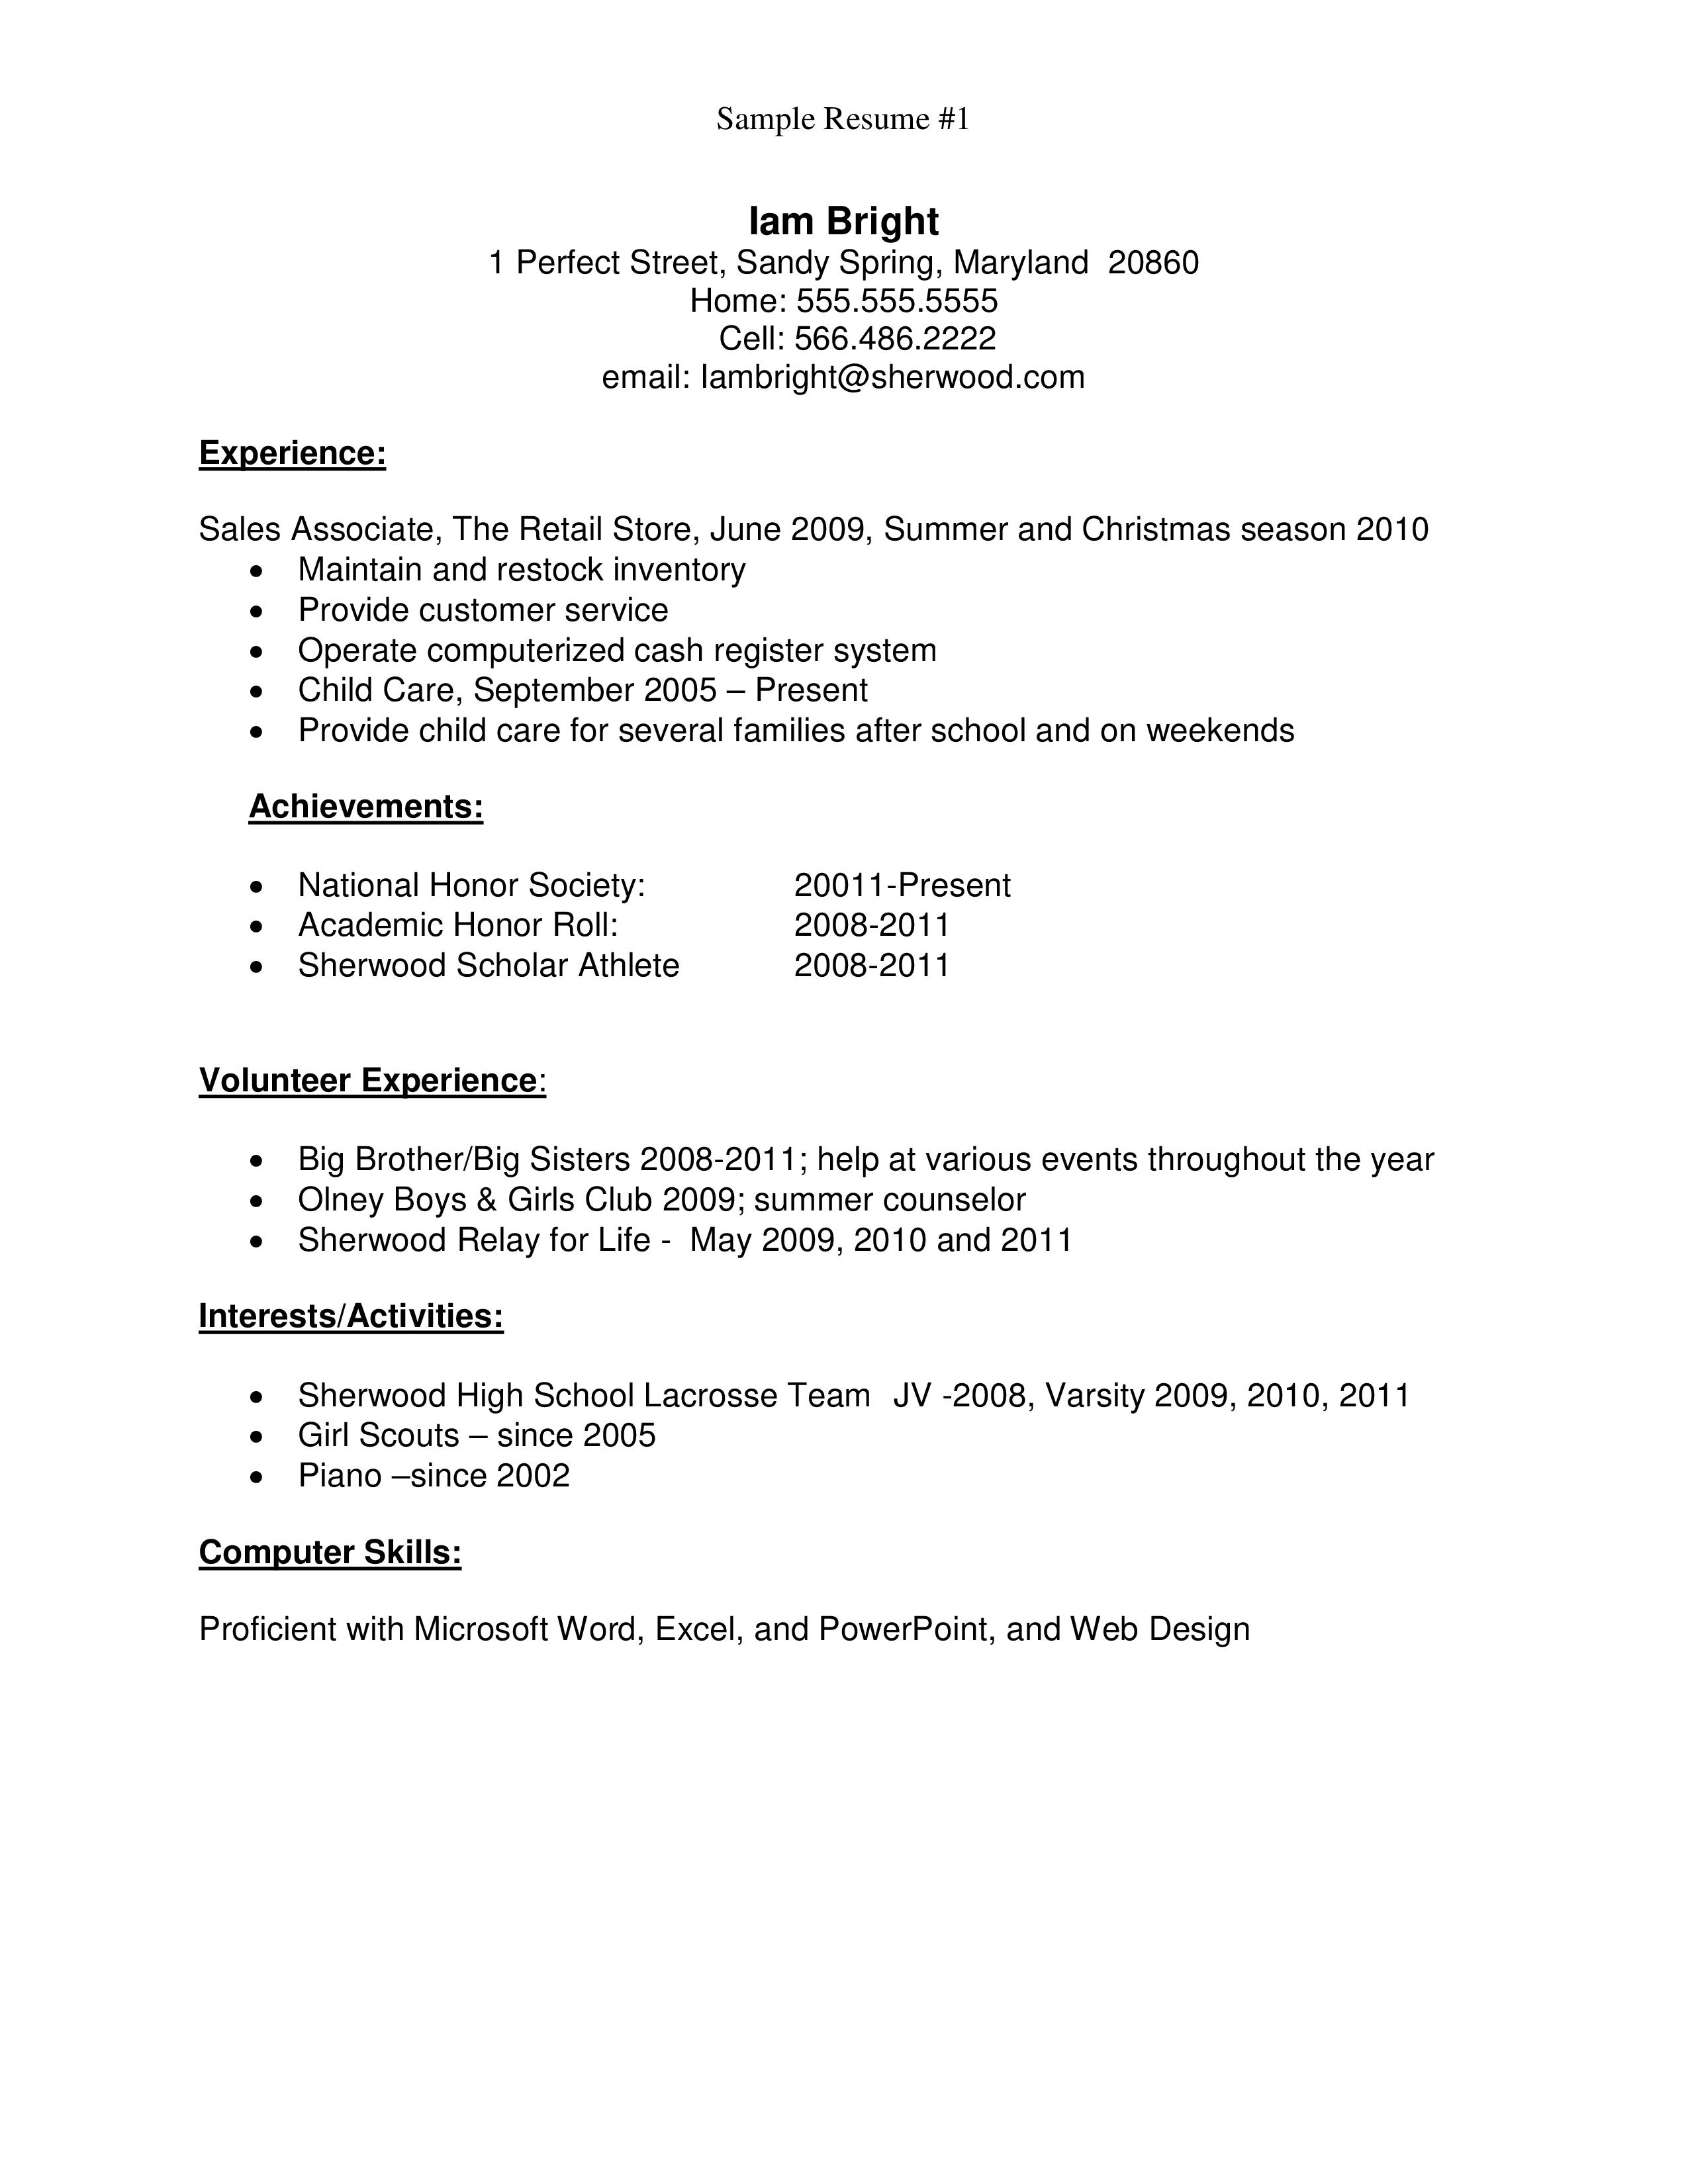 001 Fascinating Resume Template High School Student Image  Students Easy For Curriculum Vitae Format Pdf Free DownloadableFull